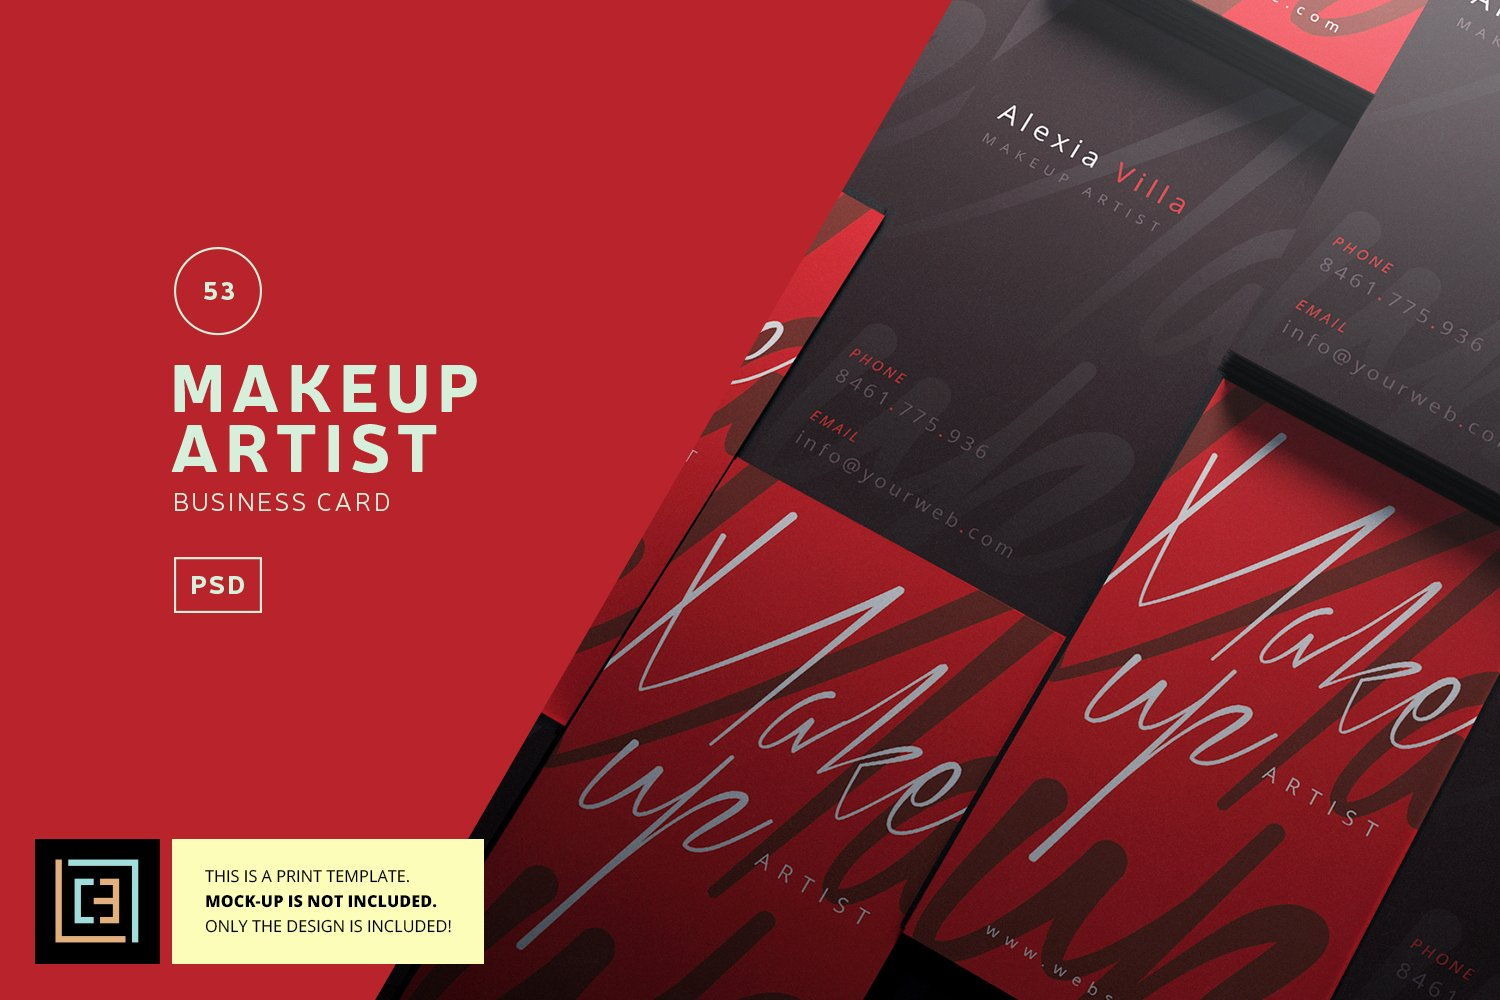 Makeup Artist Bussiness Cards New Makeup Artist Business Card Bc053